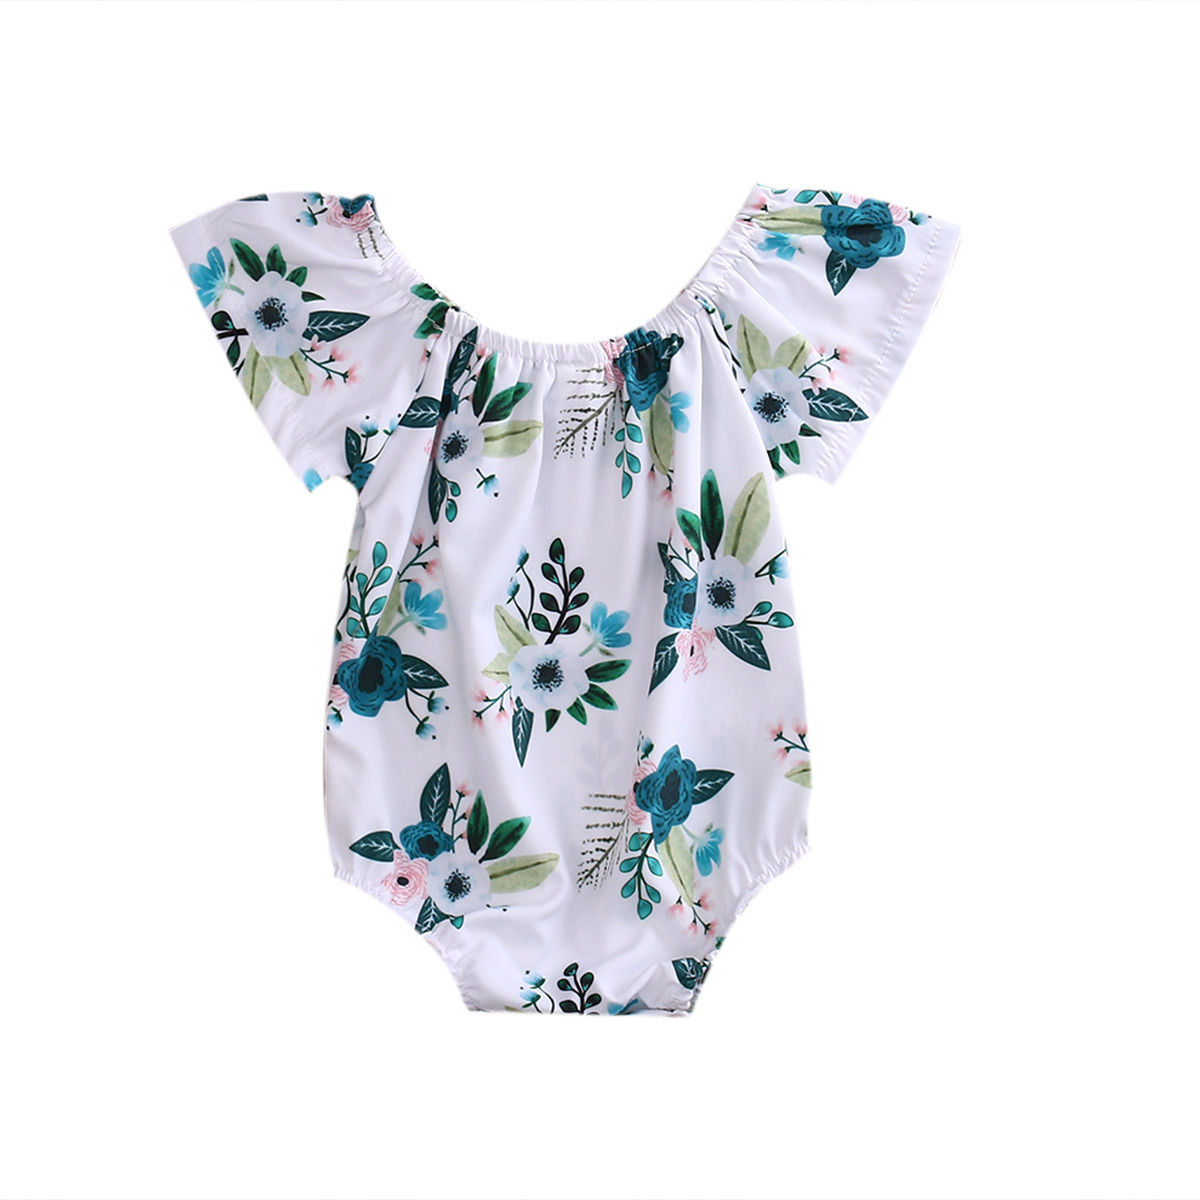 Infant Newborn Toddler Baby Girl Floral Romper Jumpsuit Outfit Playsuit Sunsuit Sleeveless Cotton Clothes